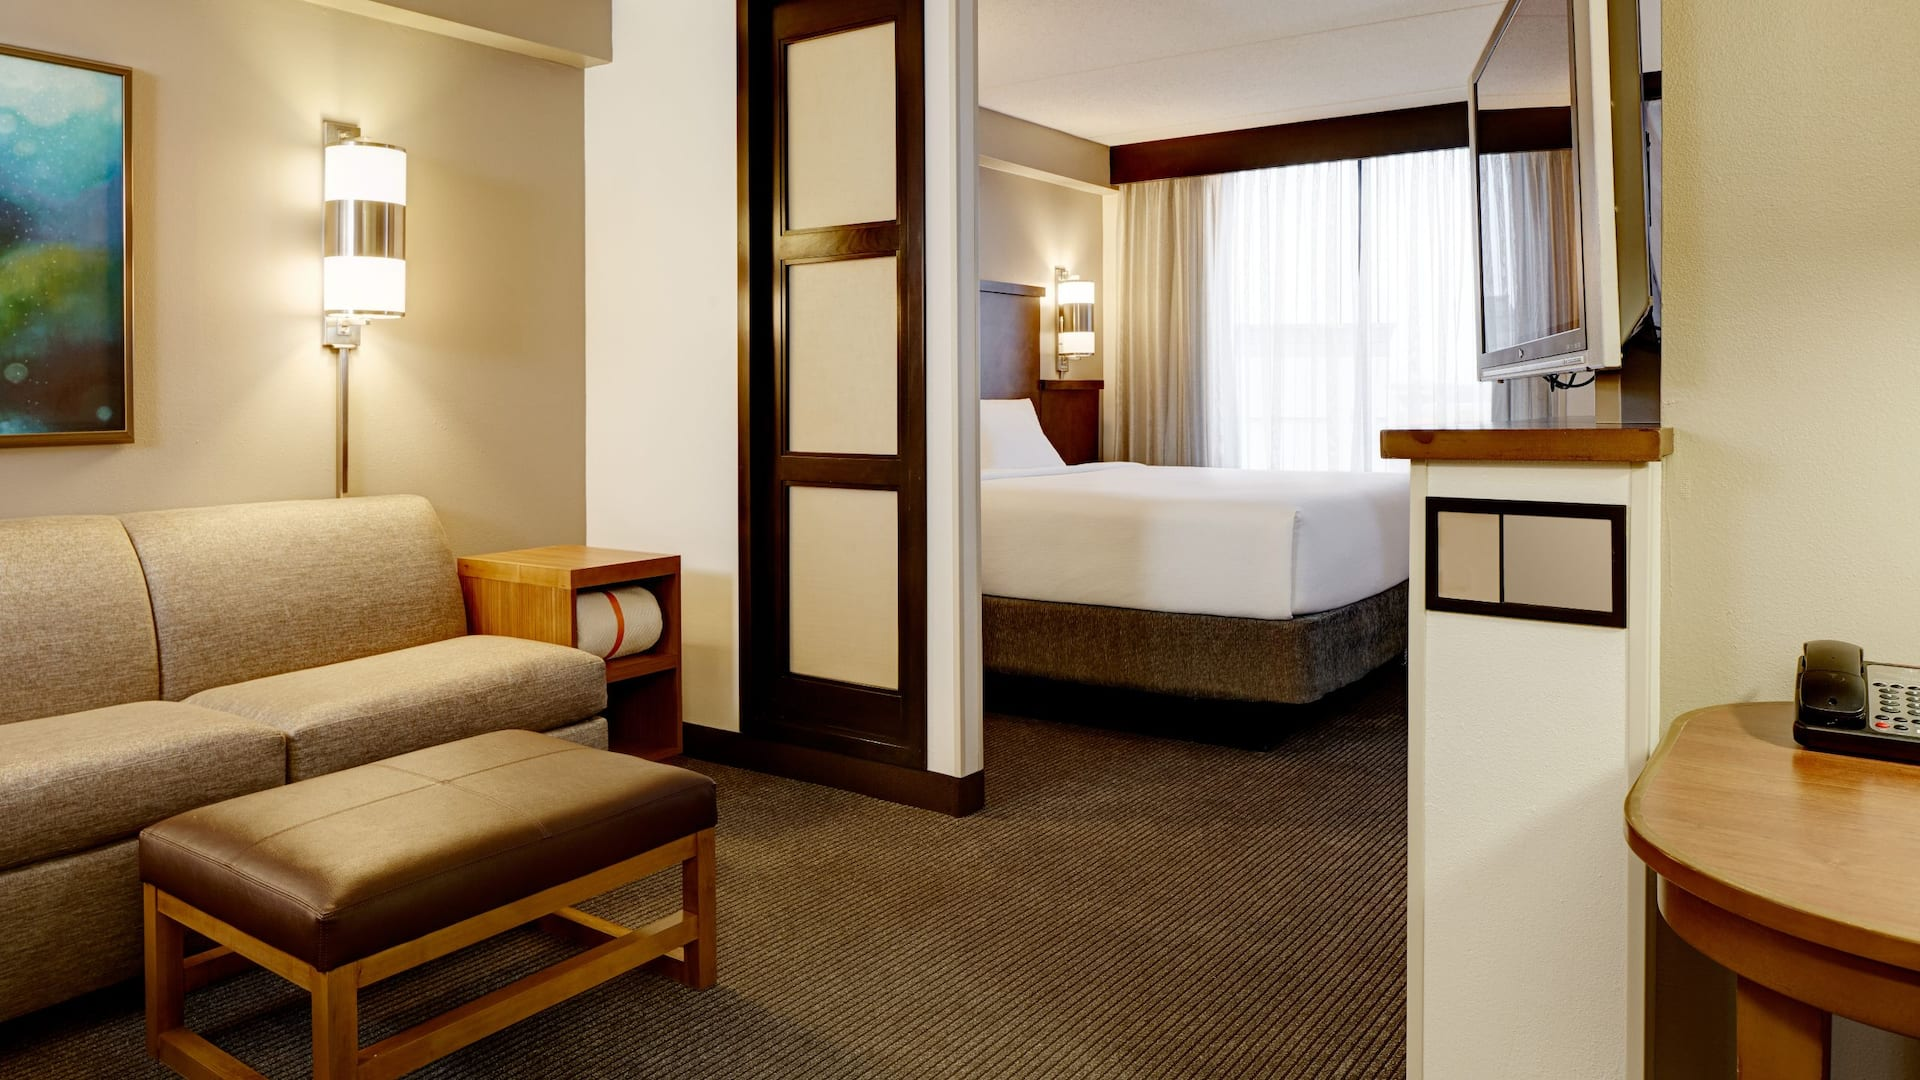 King Room with Sofa Bed in Fremont Hotels – Hyatt Place Fremont/Silicon Valley